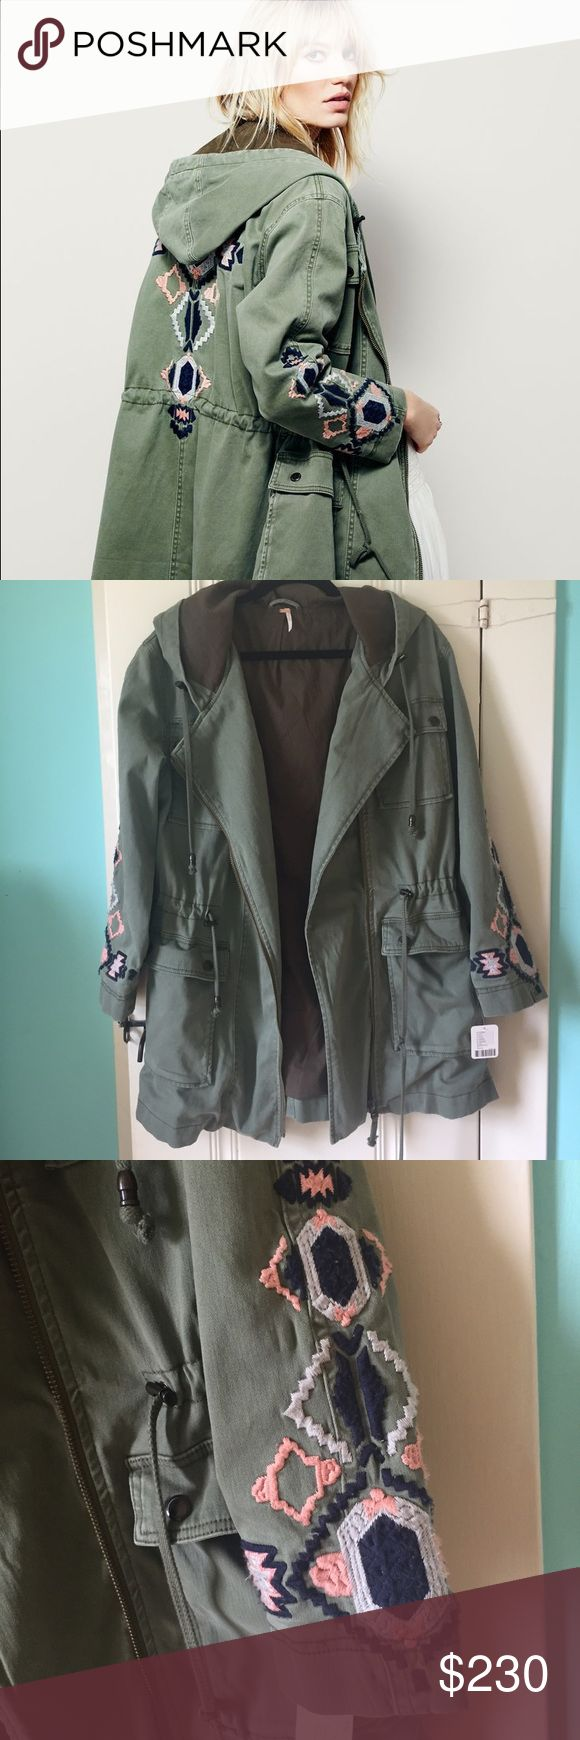 Free People Military embroidered jacket Free People Military Embroidered jacket. Super soft and beautiful color! Free People Jackets & Coats